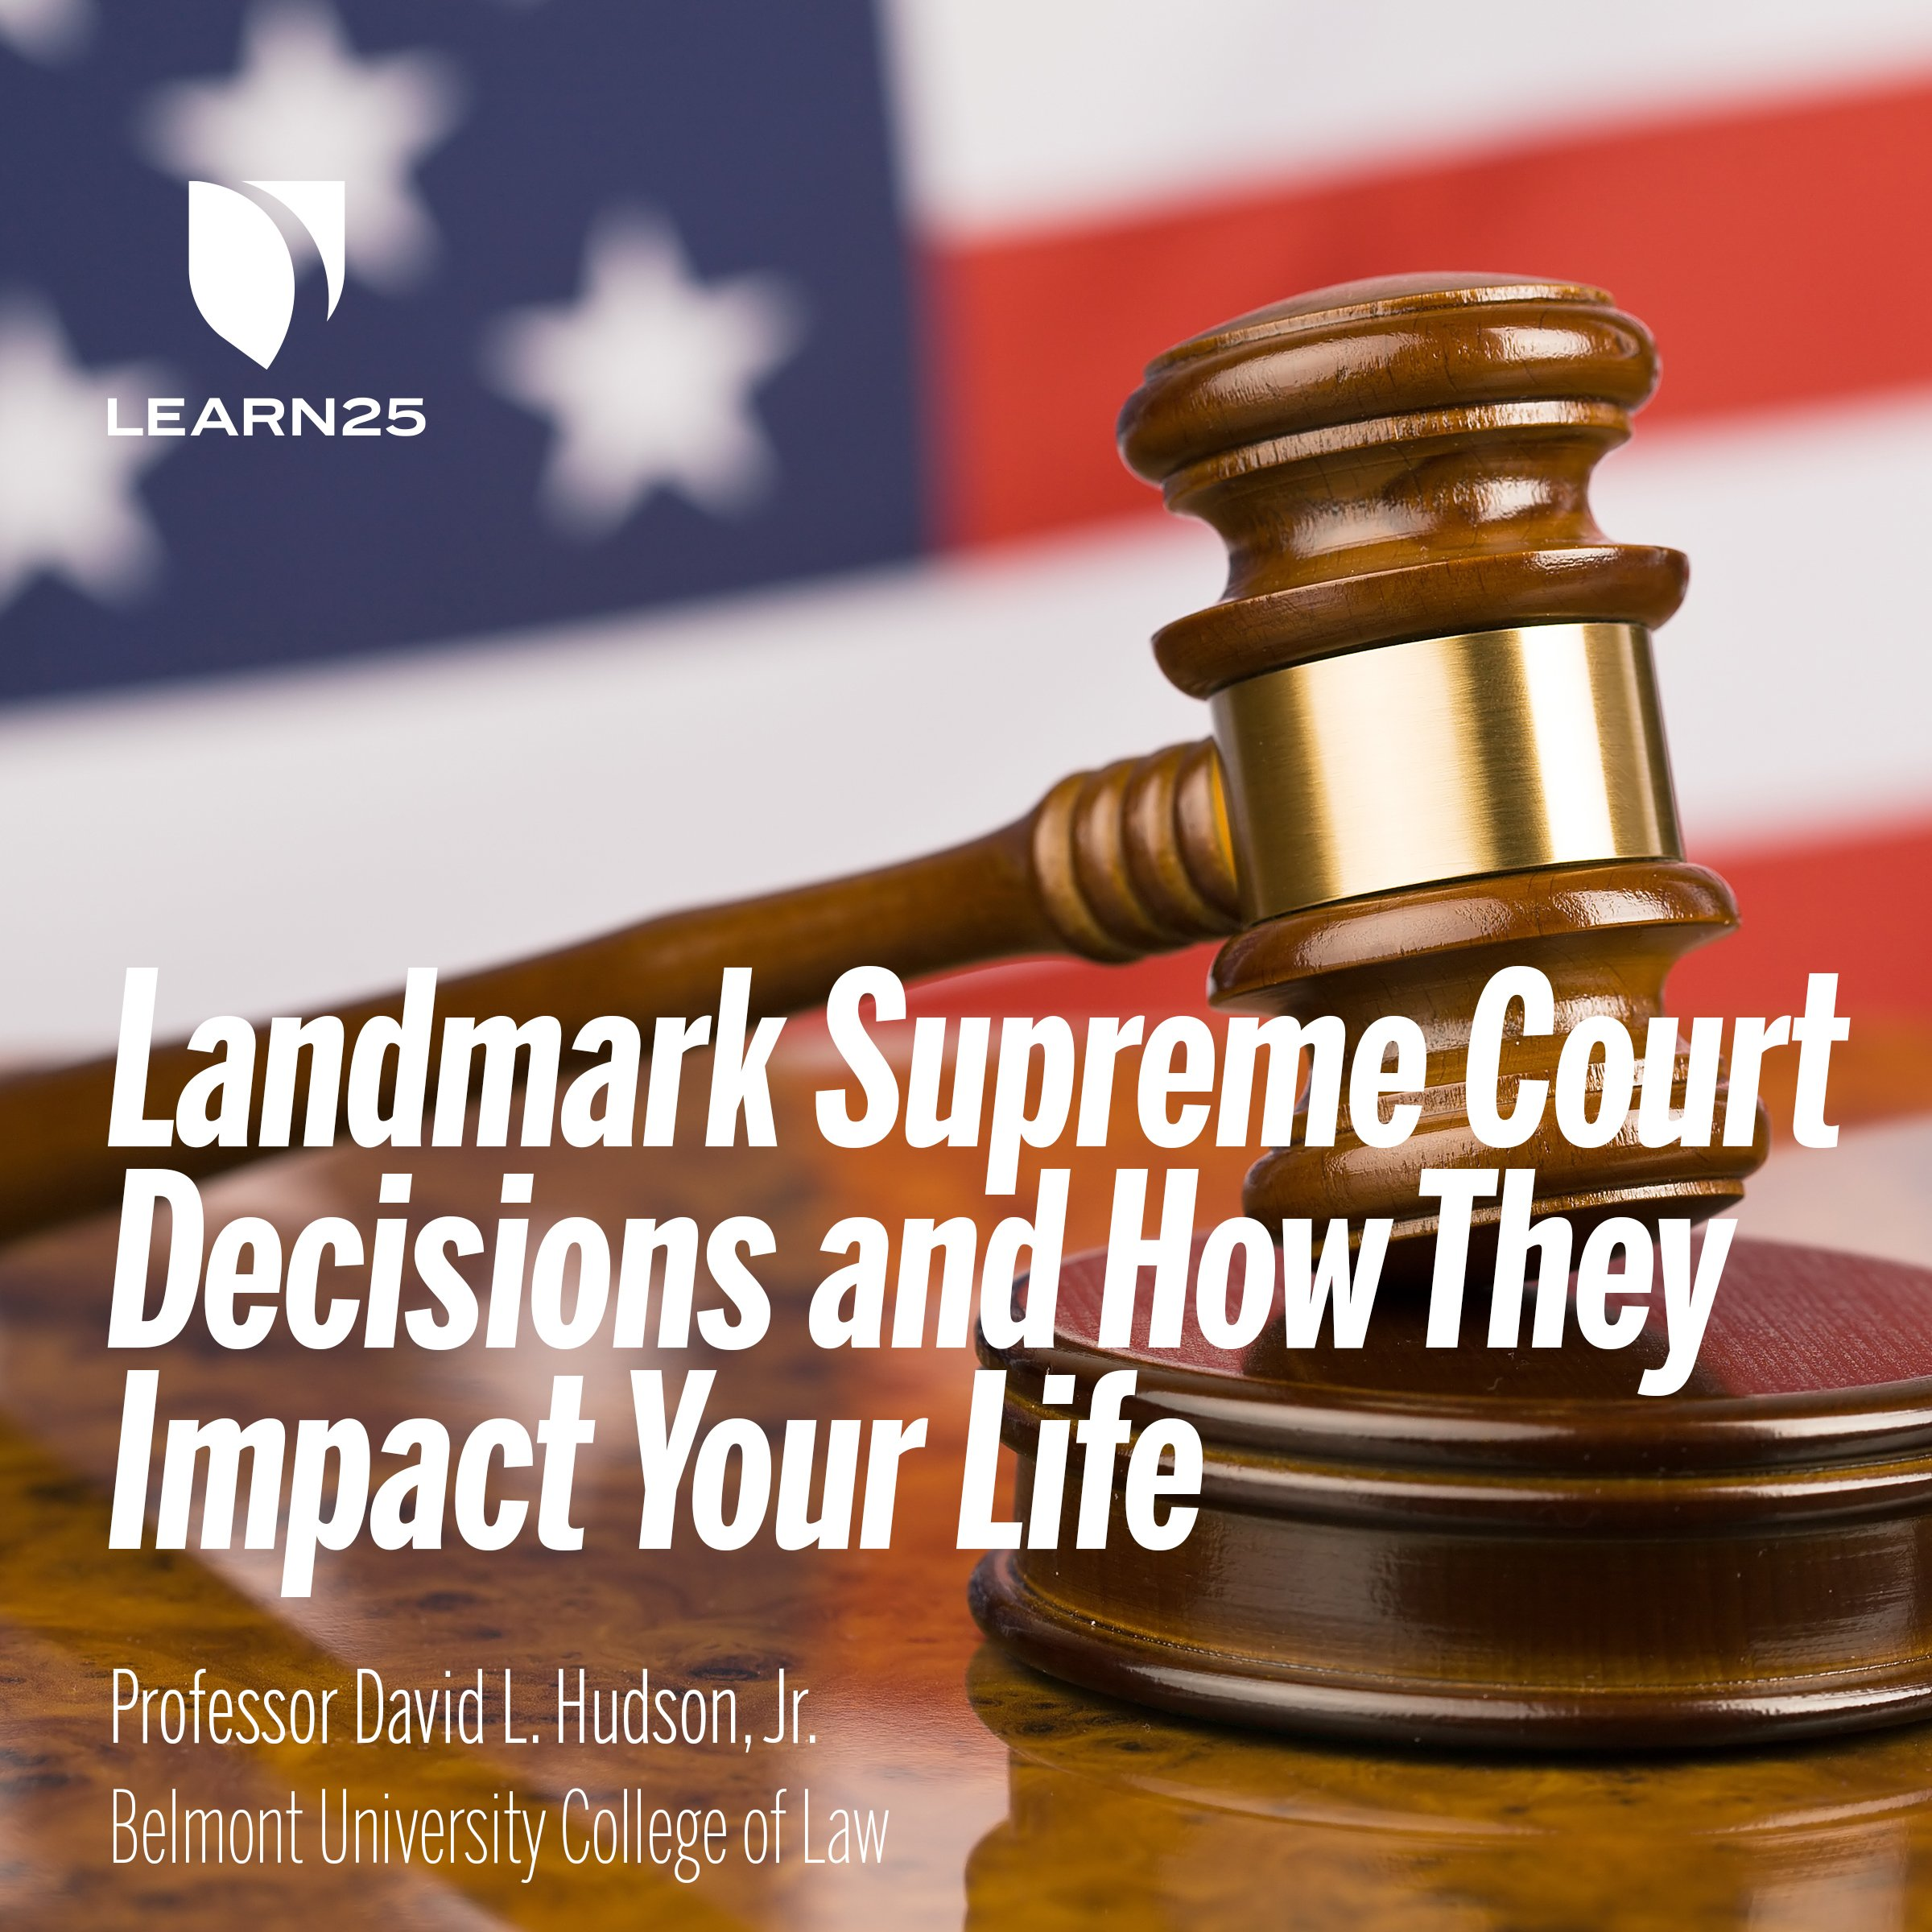 Landmark Supreme Court Decisions And Their Impact